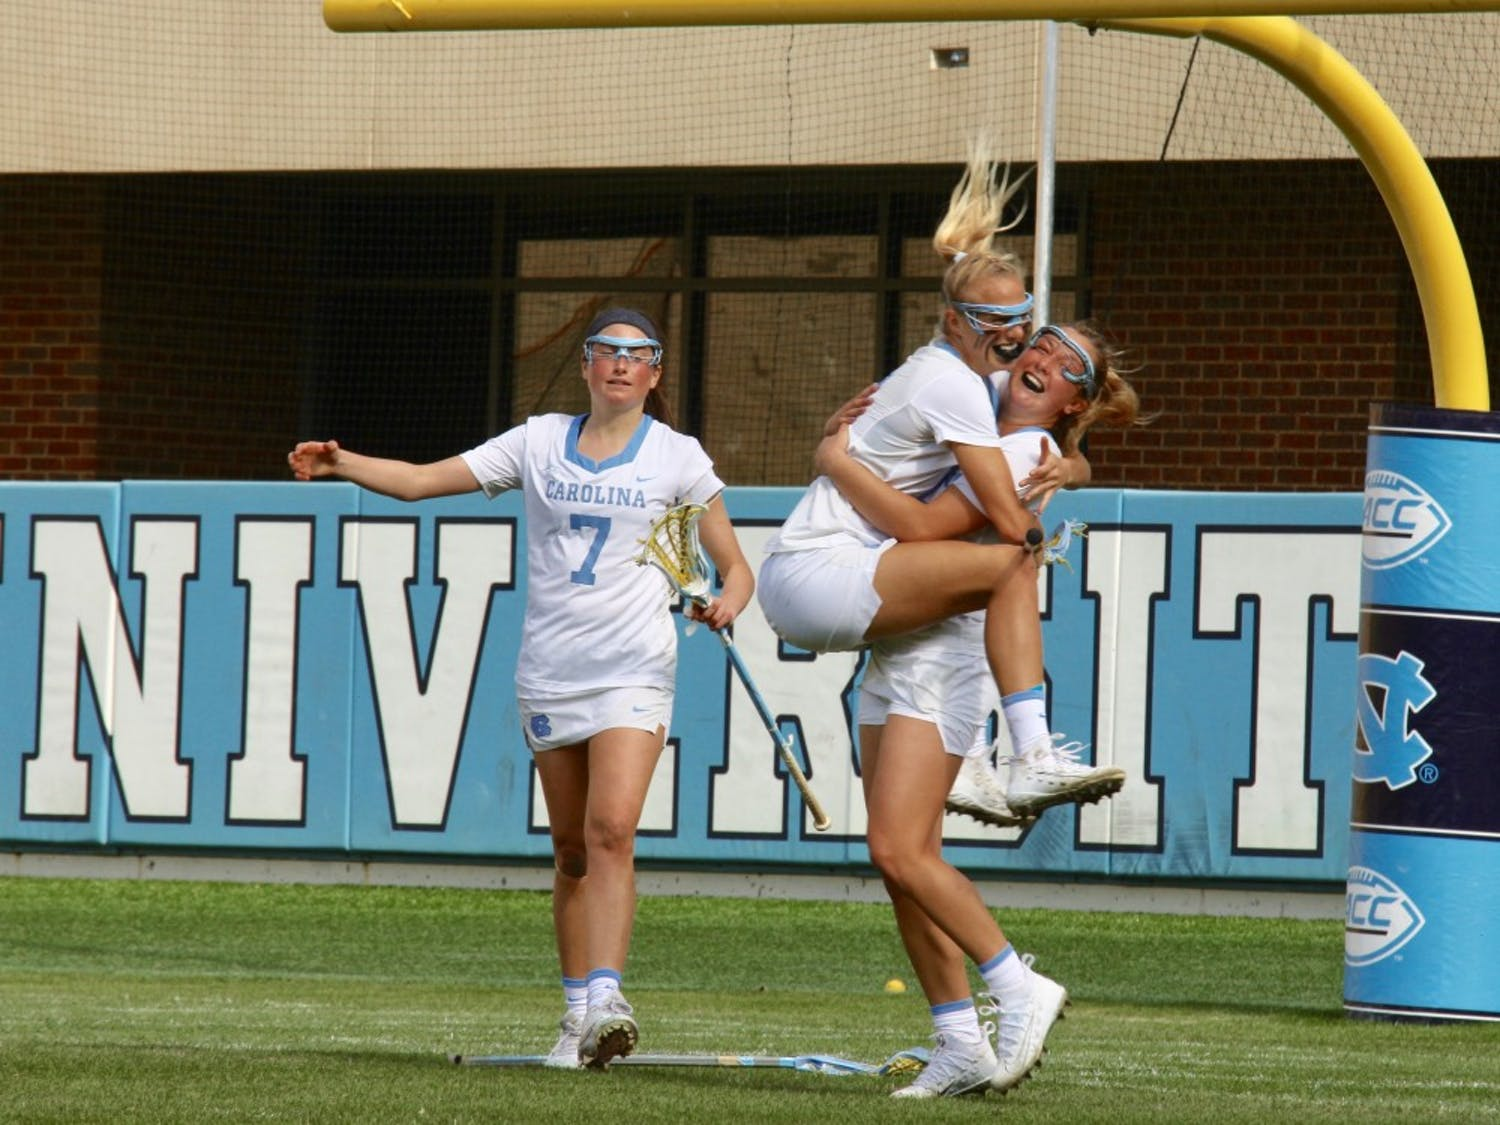 Katie Hoeg (8) leaps into the arms of attacker Jamie Ortega (3), who scored the game-winning goal against Maryland on Feb. 24 in Kenan Stadium.